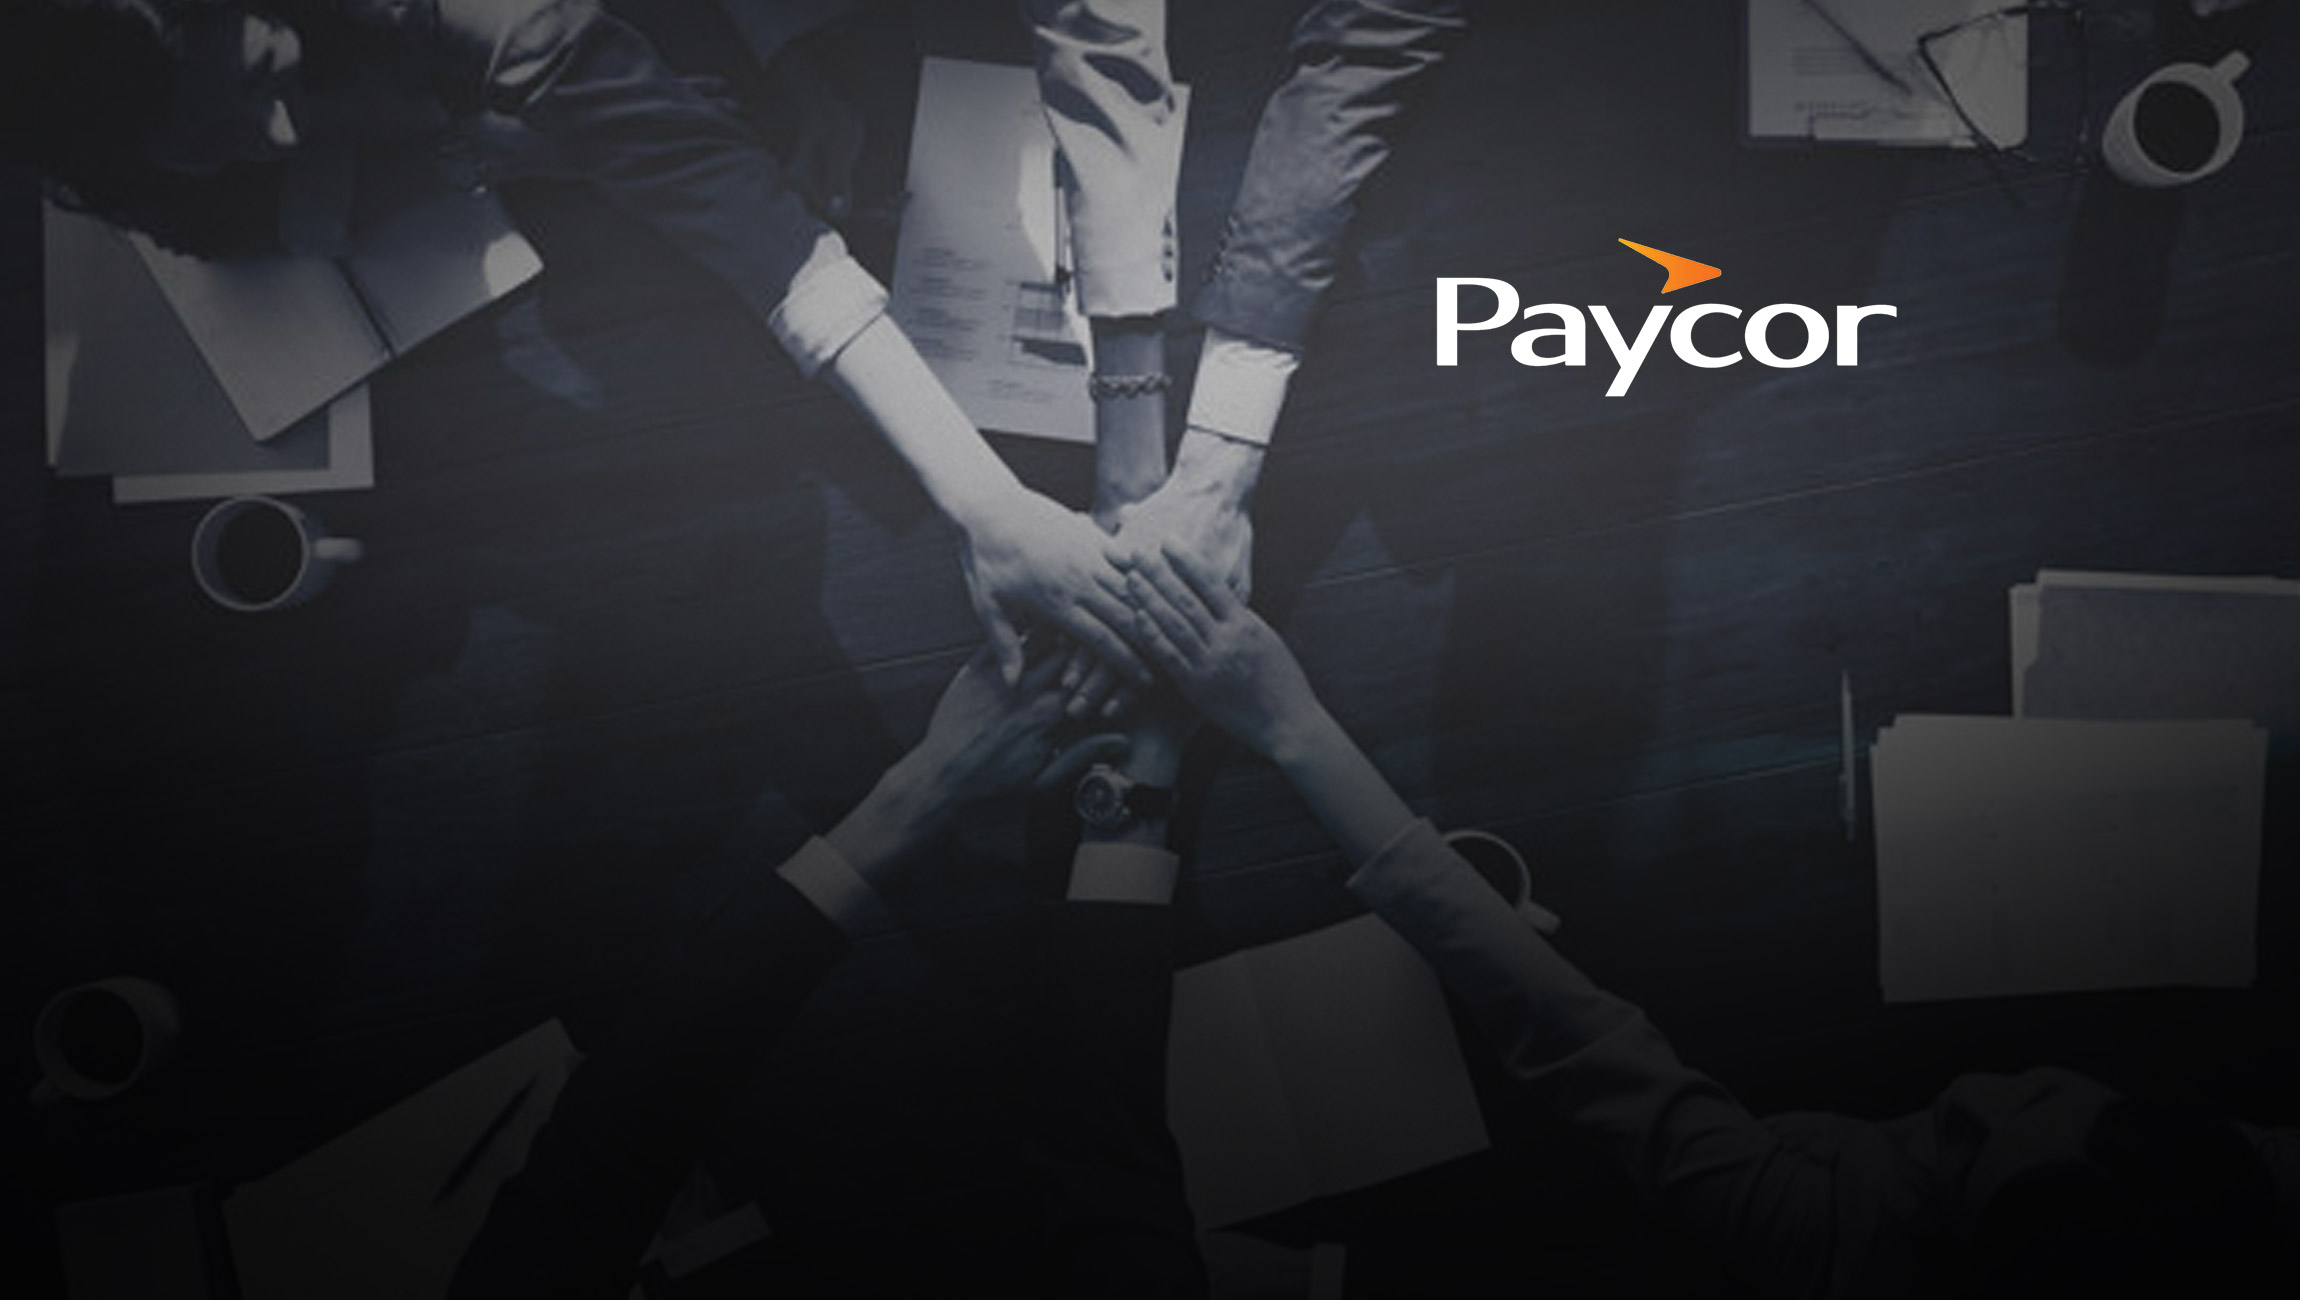 """New Research from Paycor Finds Only One-Third of Small- to Medium-Sized Businesses Describe Their Teams as """"Effective"""""""